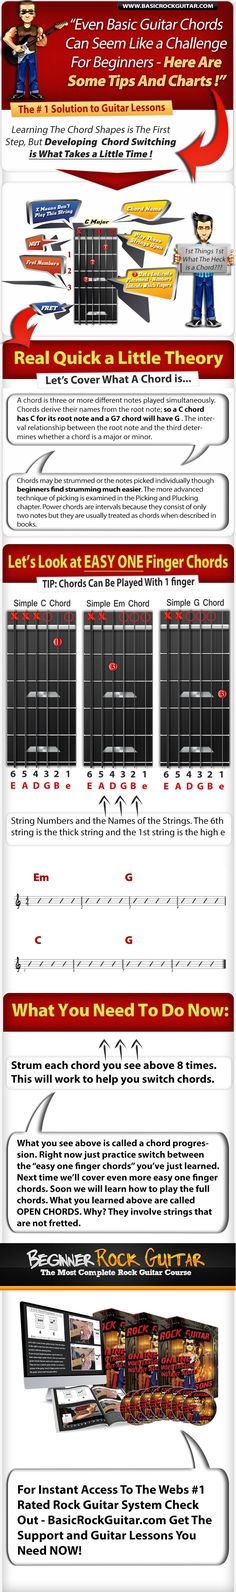 Guitar Lessons For Beginners. Beginners can learn how to switch between simple one finger guitar chords. In this lesson we cover 2 chords. For more info: http://basicrockguitar.com